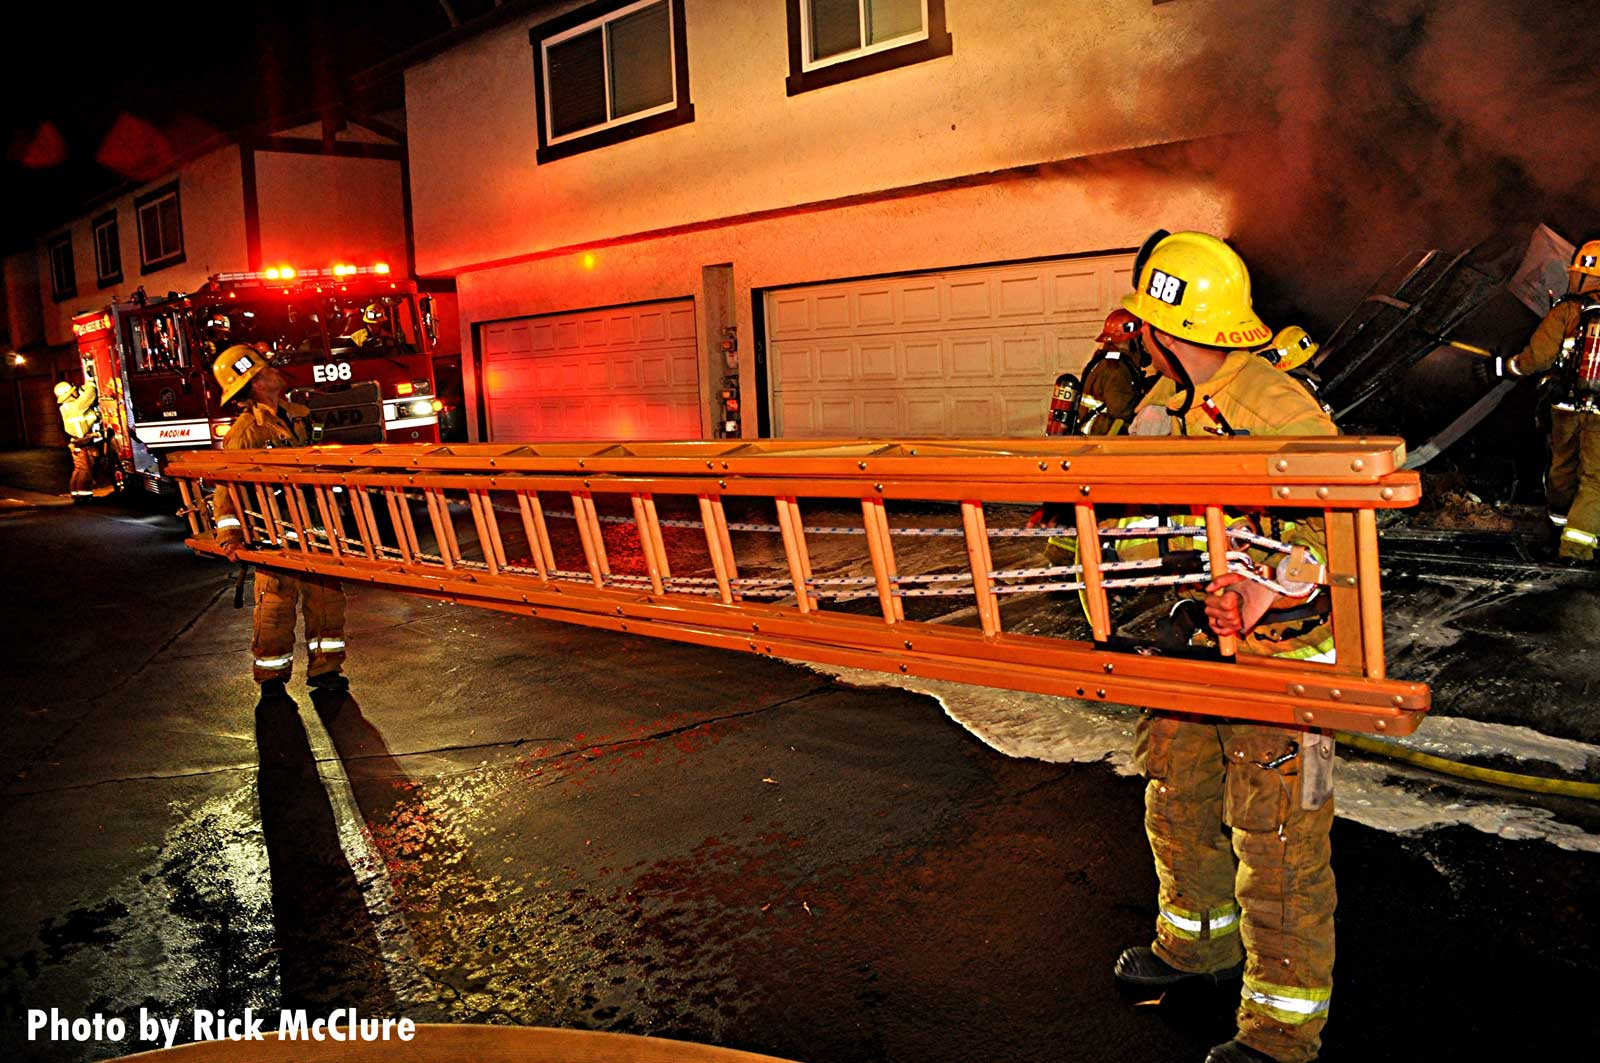 LAFD firefighters with a portable ladder